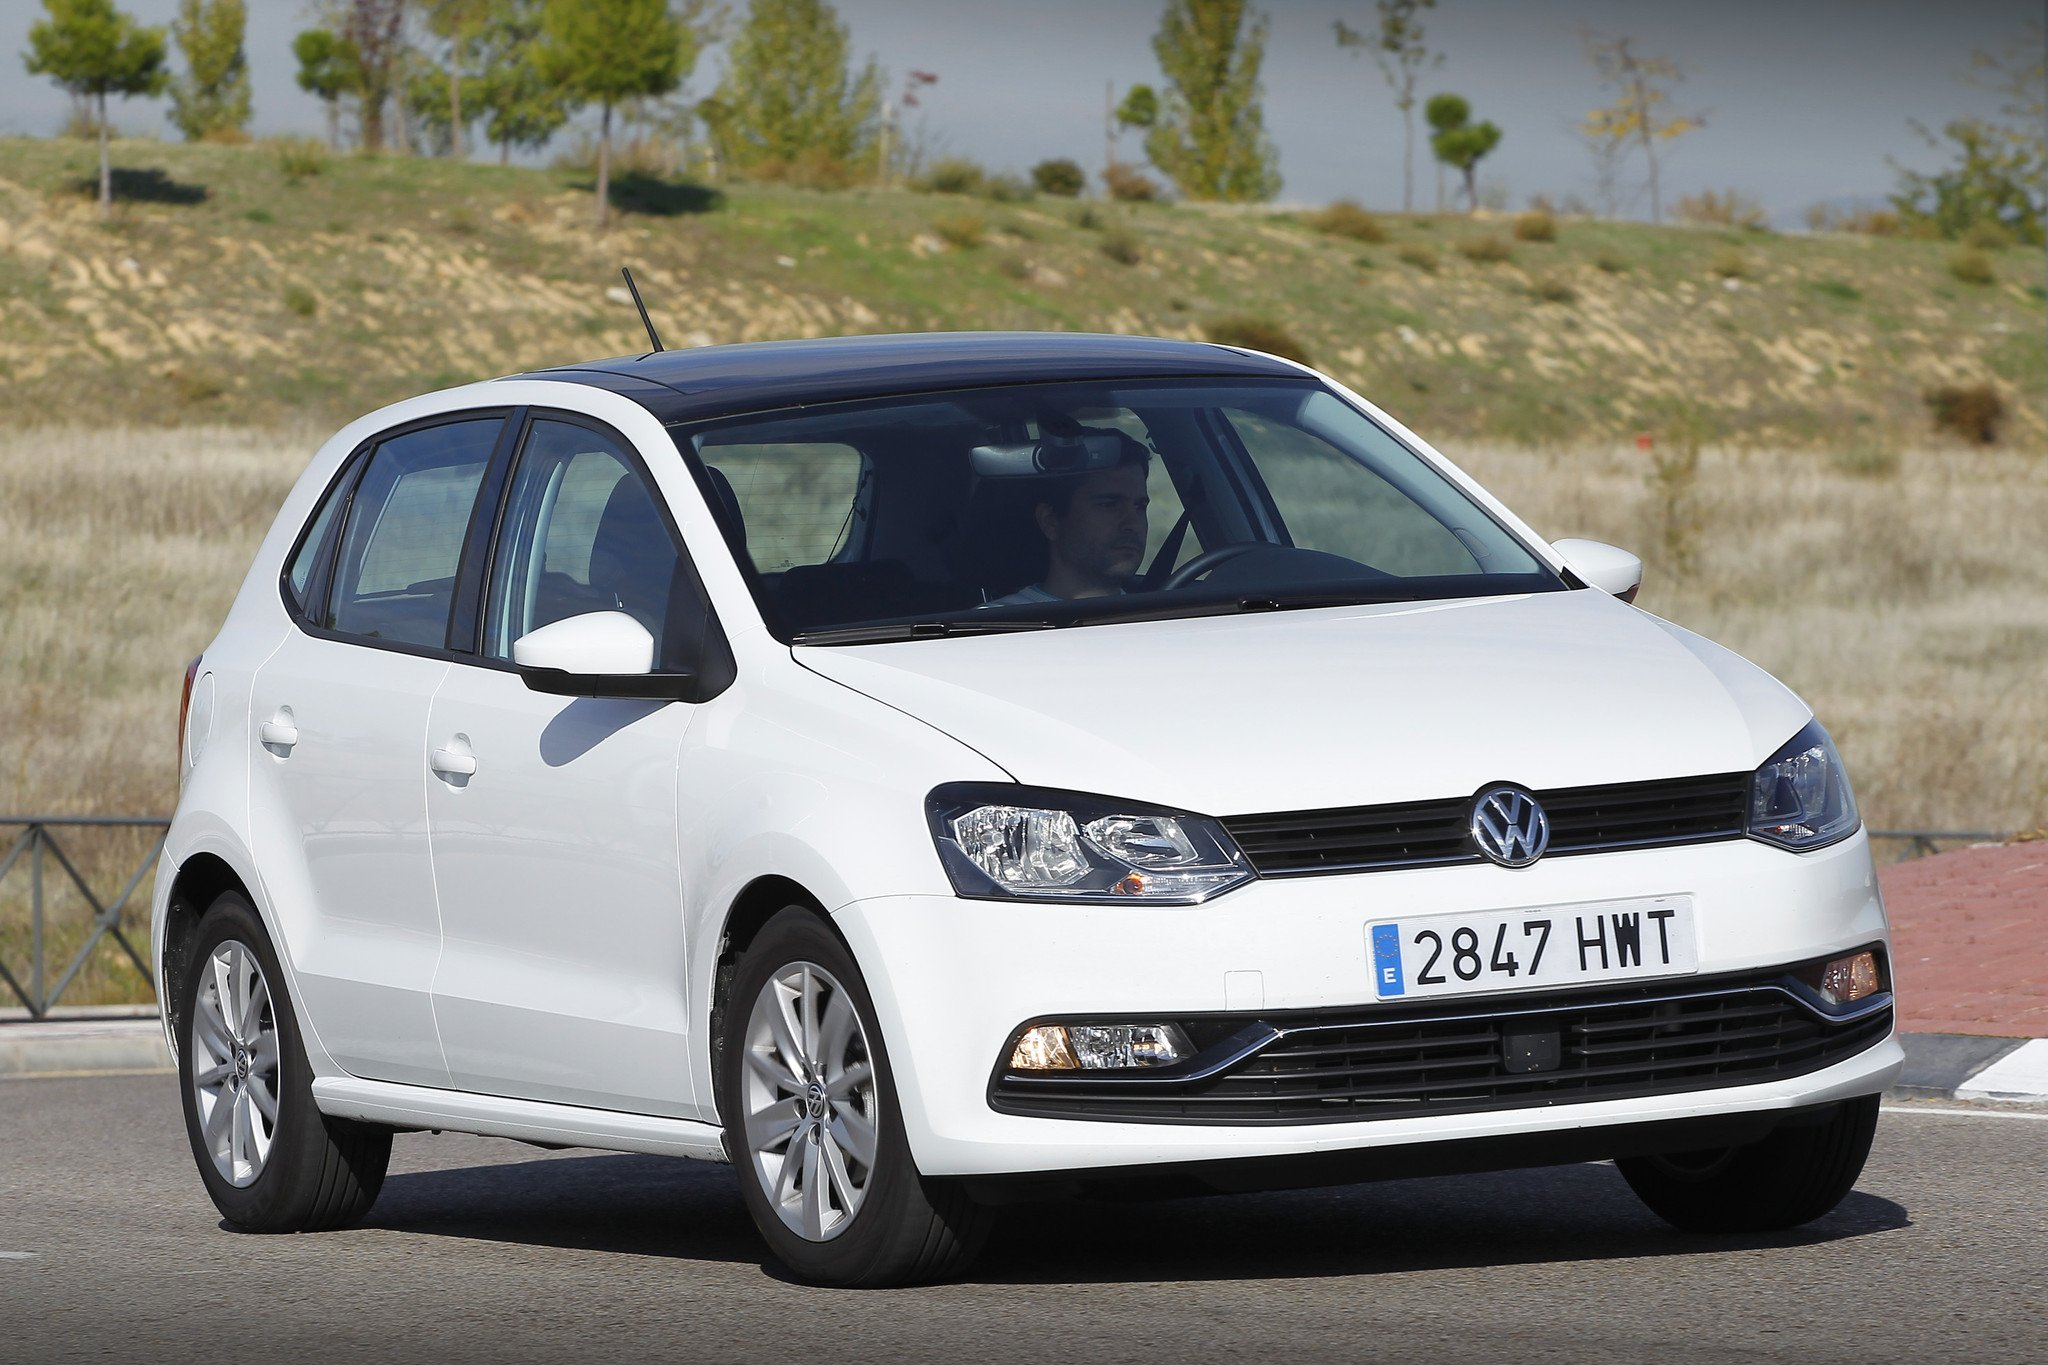 prueba volkswagen polo bluemotion 1 4 tdi 90 cv son suficientes. Black Bedroom Furniture Sets. Home Design Ideas